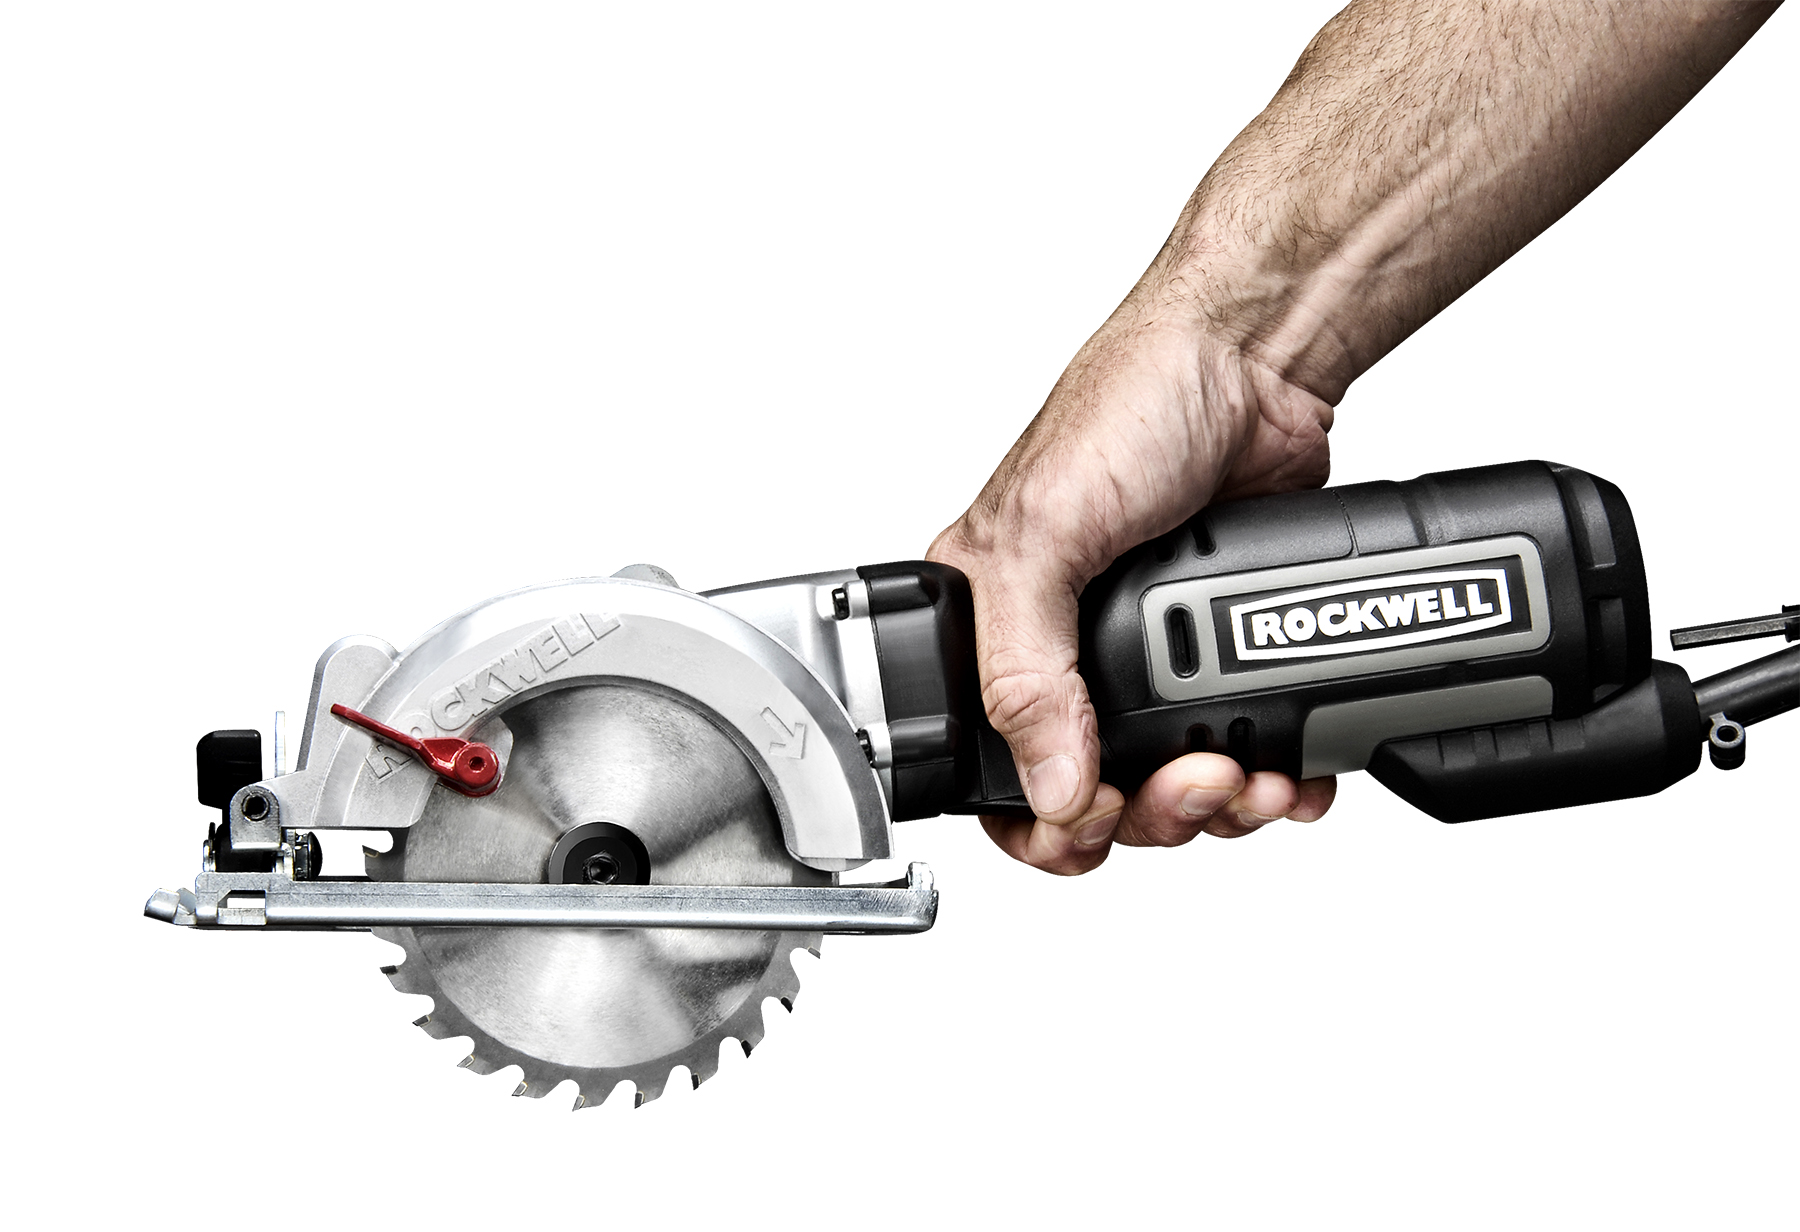 New Rockwell Tools Make Great Holiday Gifts For Do It